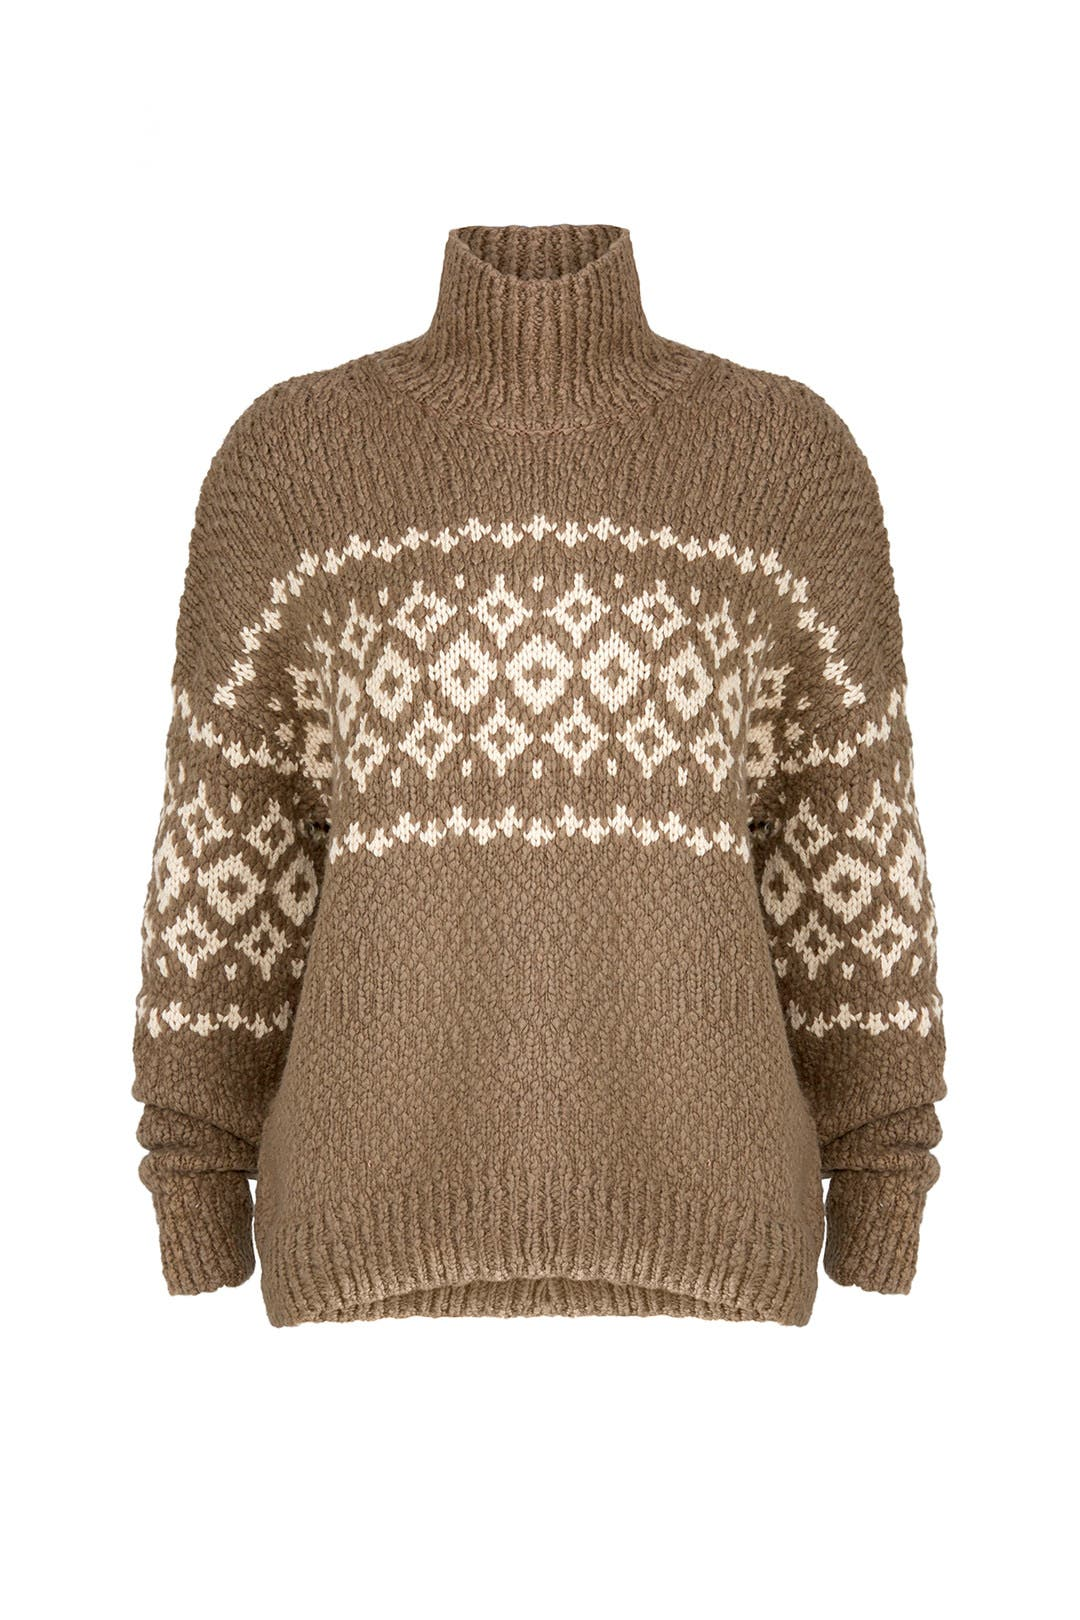 Fair Isle Sweater by VINCE. for $85 | Rent the Runway